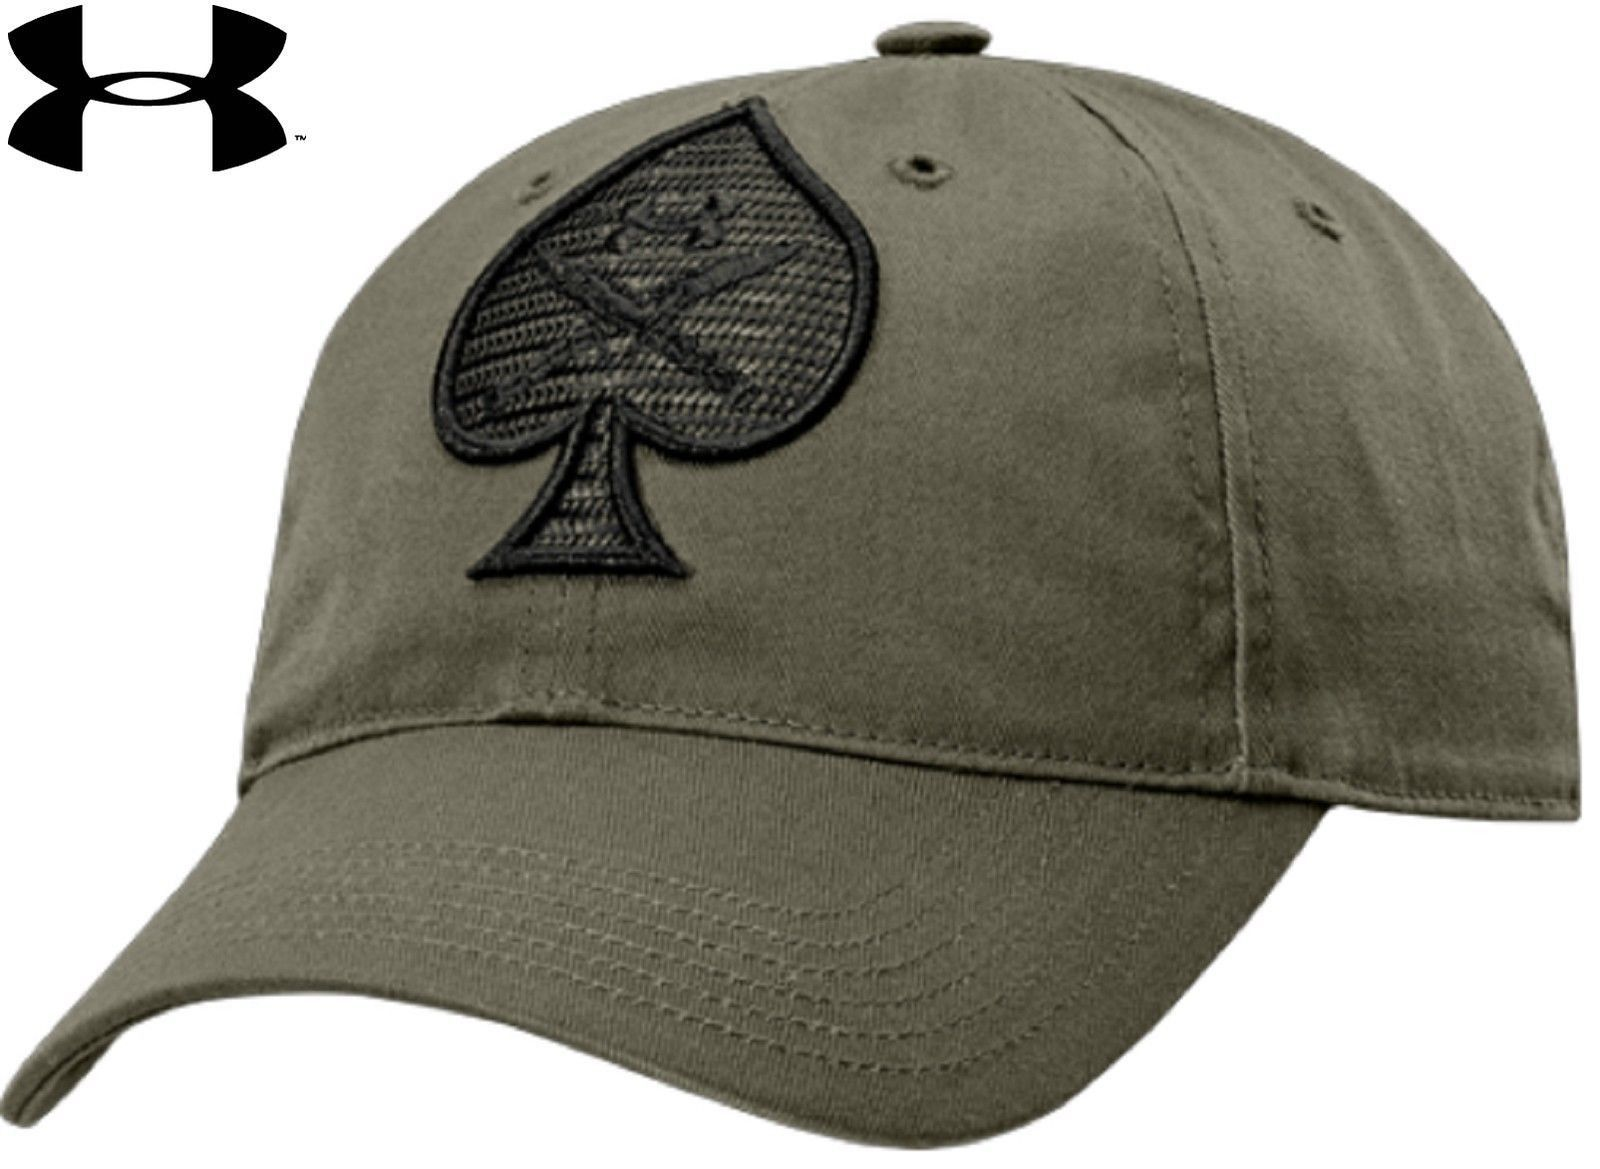 c41fb6e7fc13d9 Under Armour Tactical Spade Hat - UA Men's Black or OD Adjustable Baseball  Cap